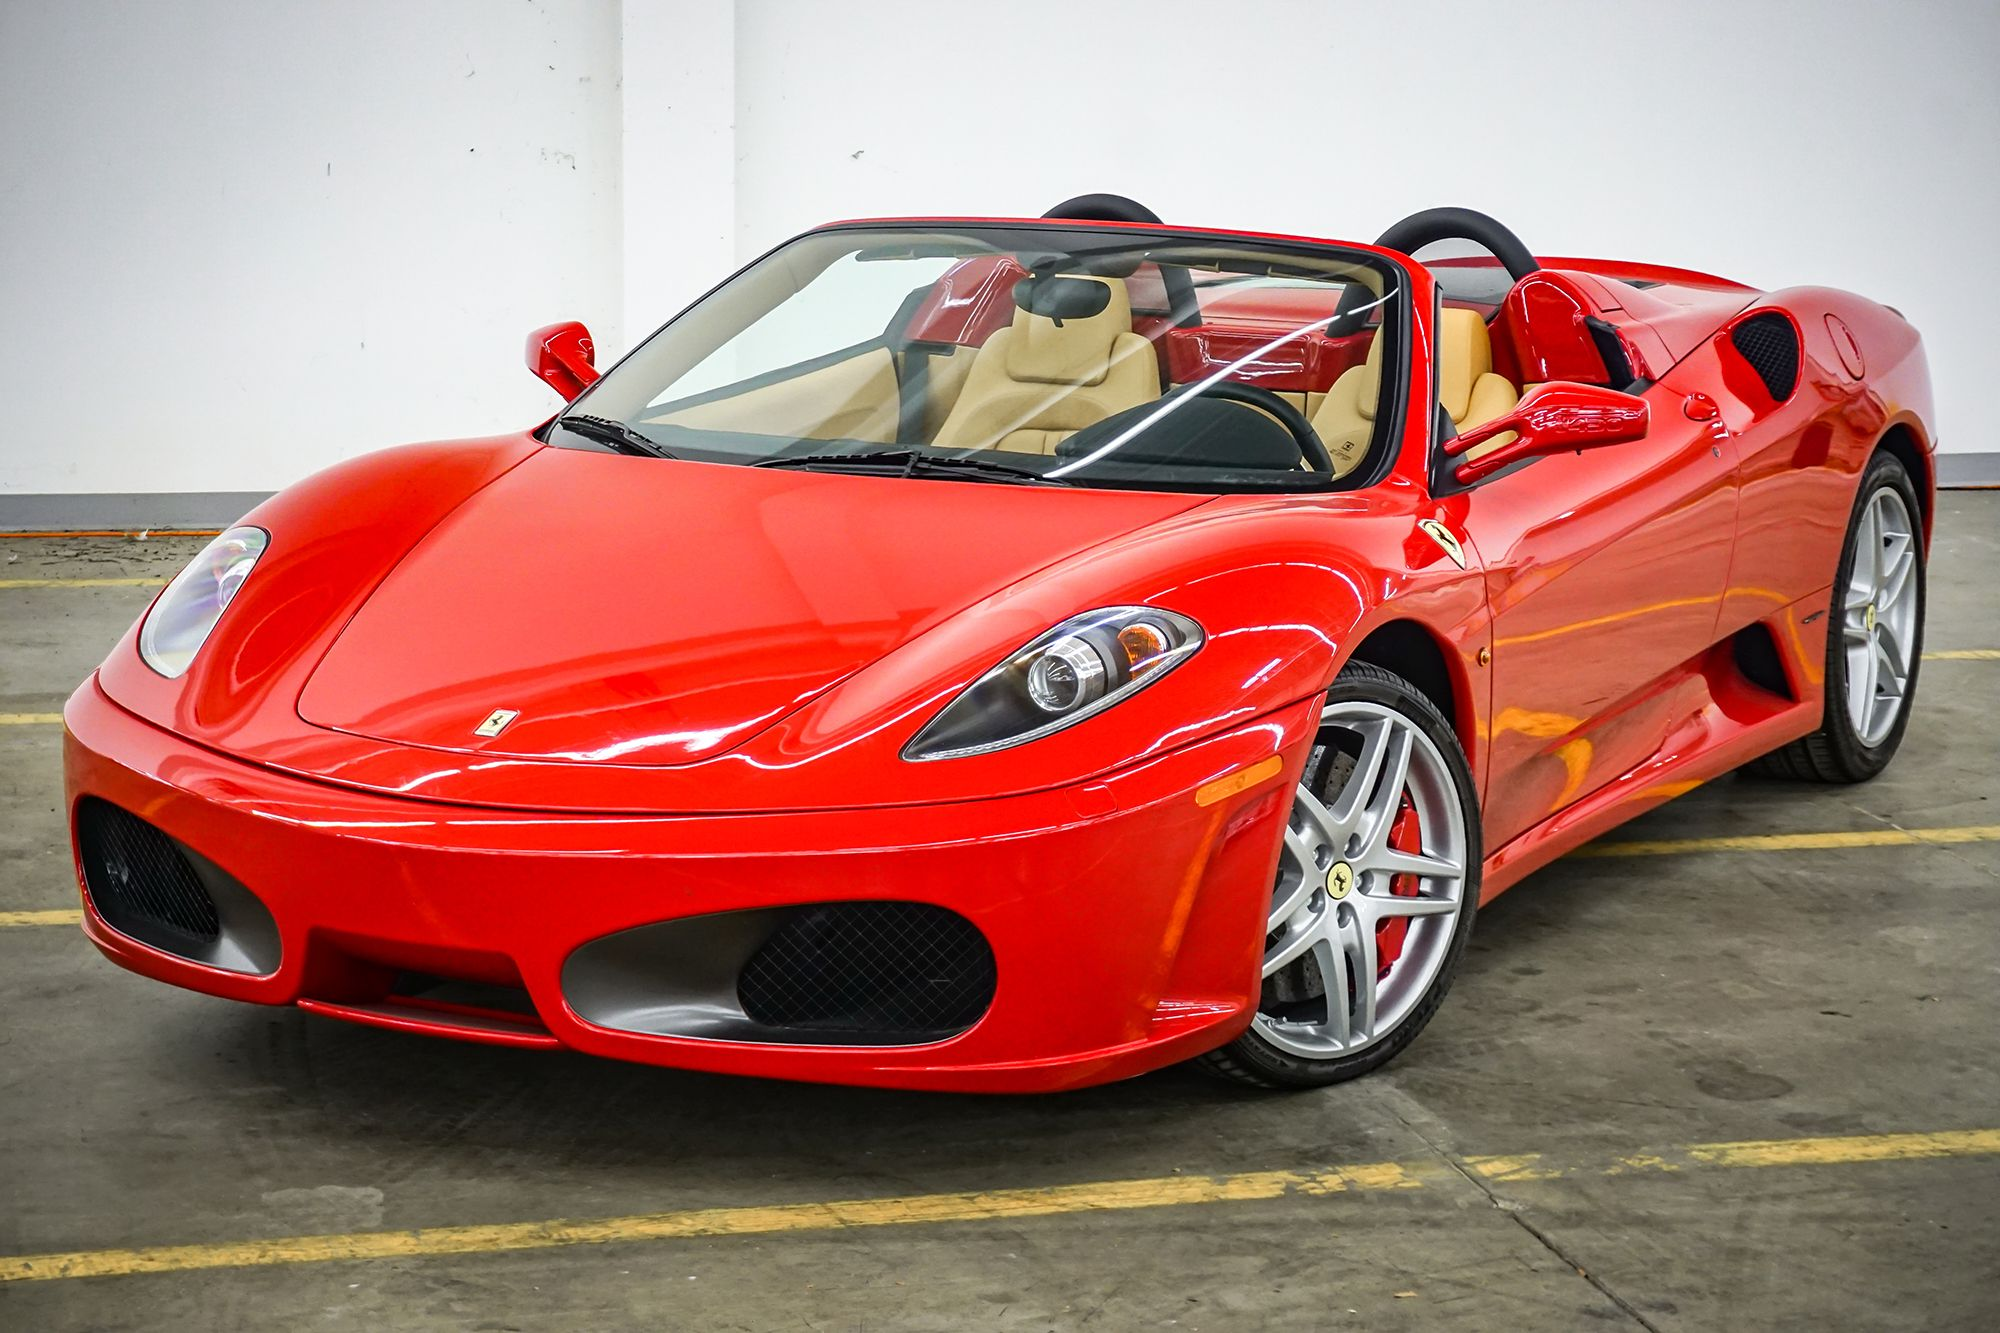 This 2005 Ferrari F430 Spider Was Purchased New By The Current